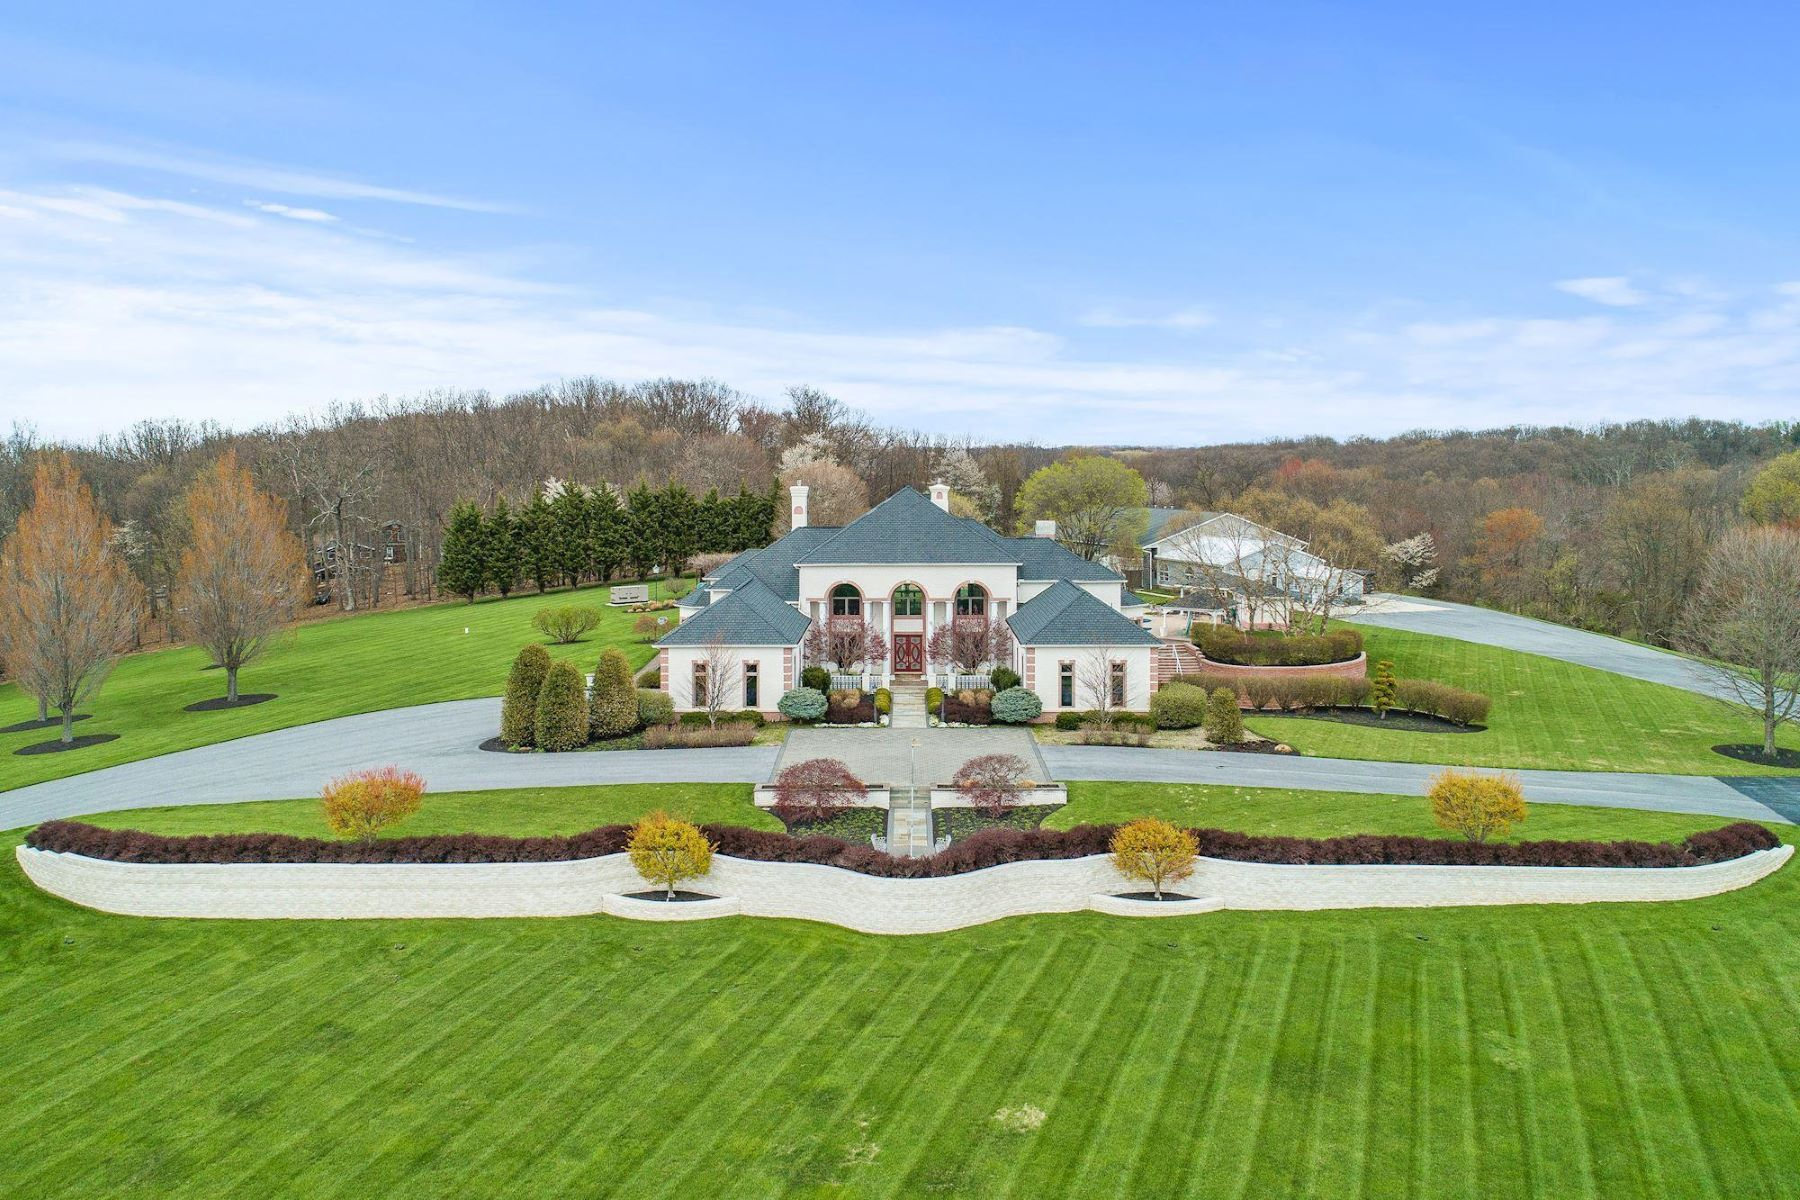 Single Family Homes for Sale at 13156 Old Annapolis Rd Mount Airy, Maryland 21771 United States